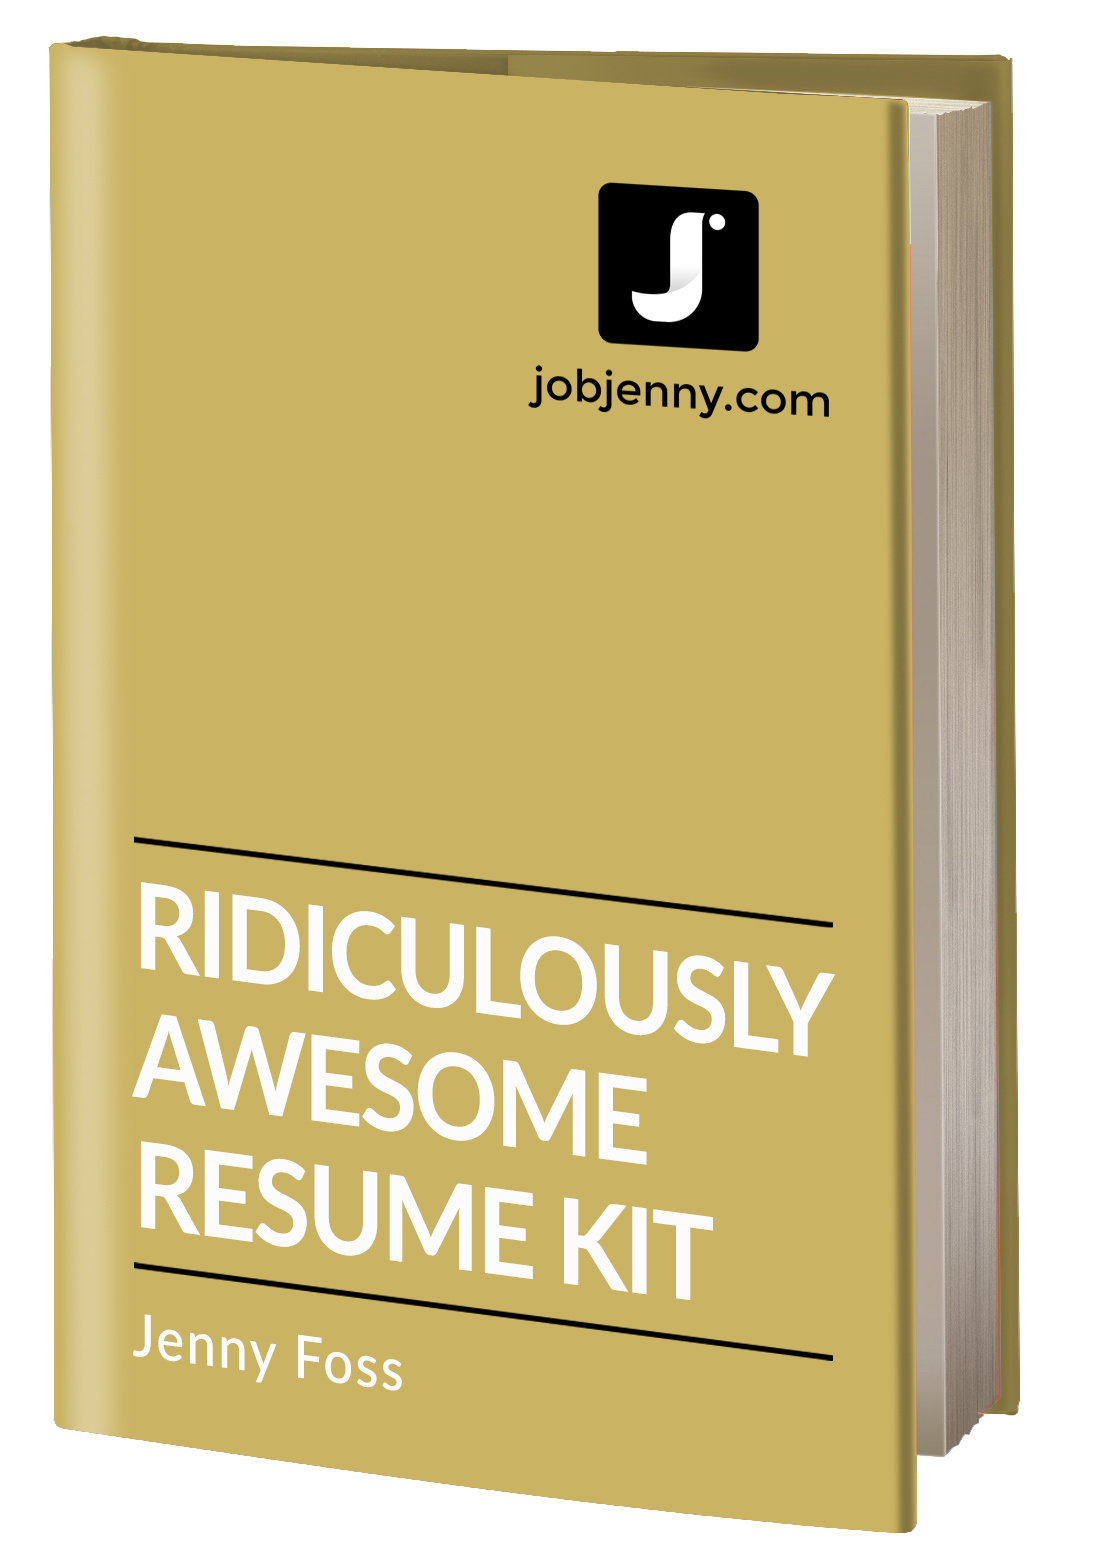 Ridiculously Awesome Resume Kit Career Coach Jobjenny